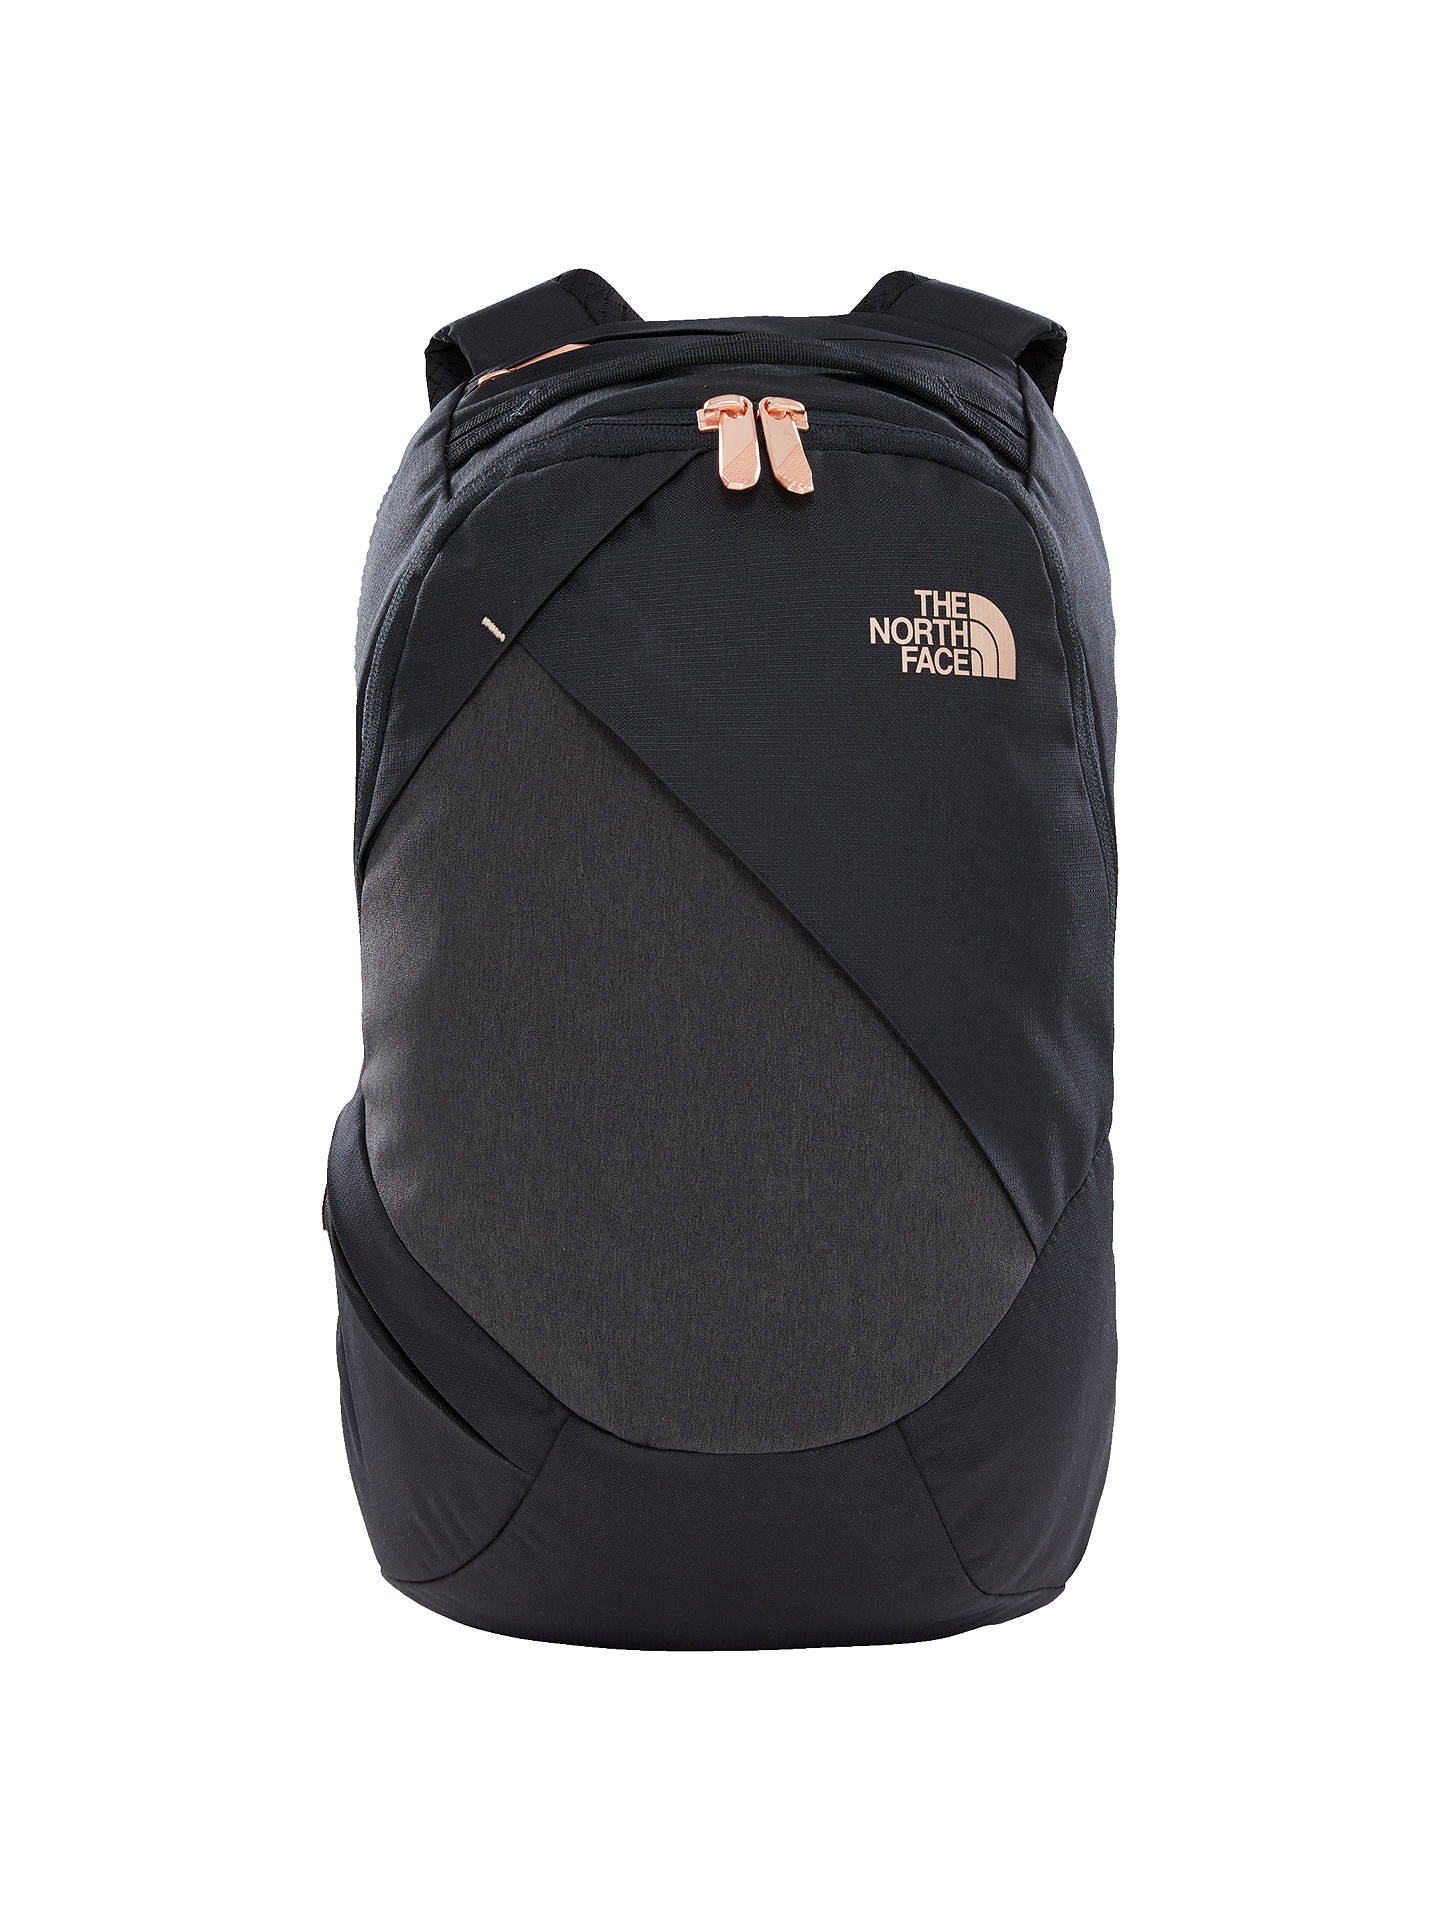 a35942e6d The North Face Electra Women's Backpack, Black/Gold at John Lewis ...